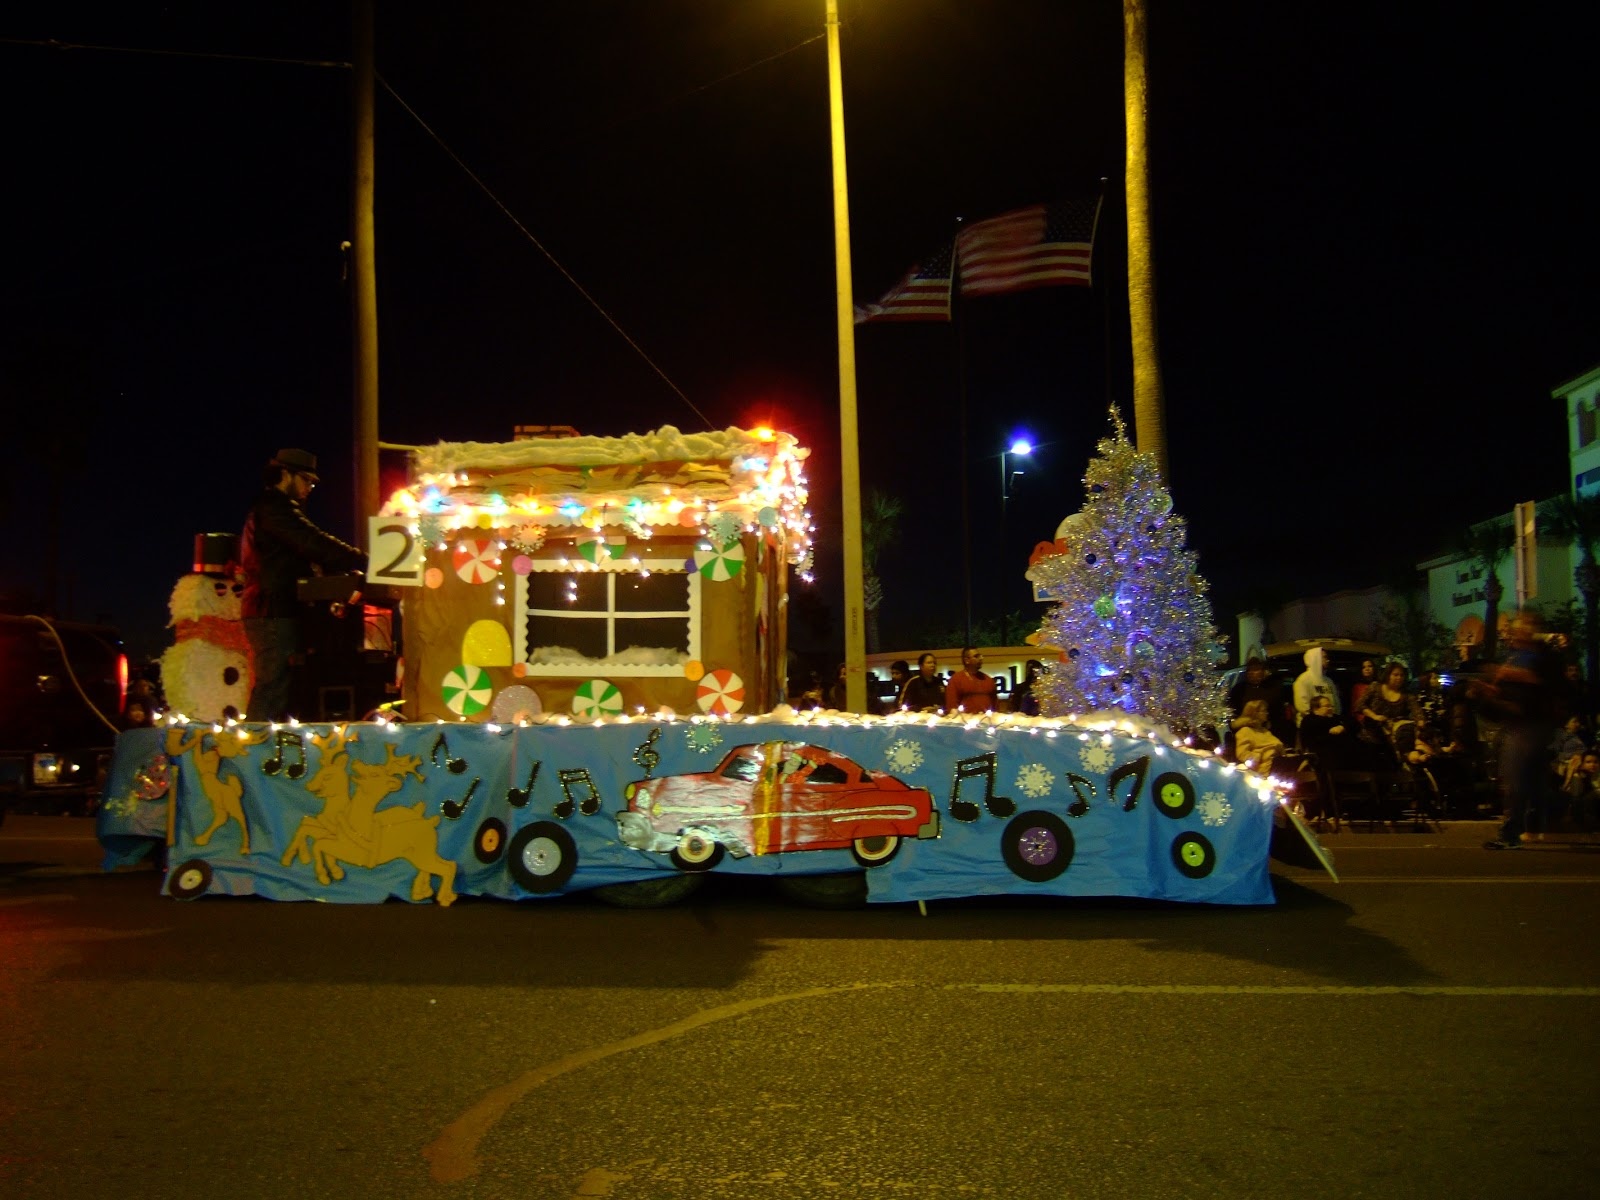 Christmas float ideas for parade 2015 happy new year for Princess float ideas